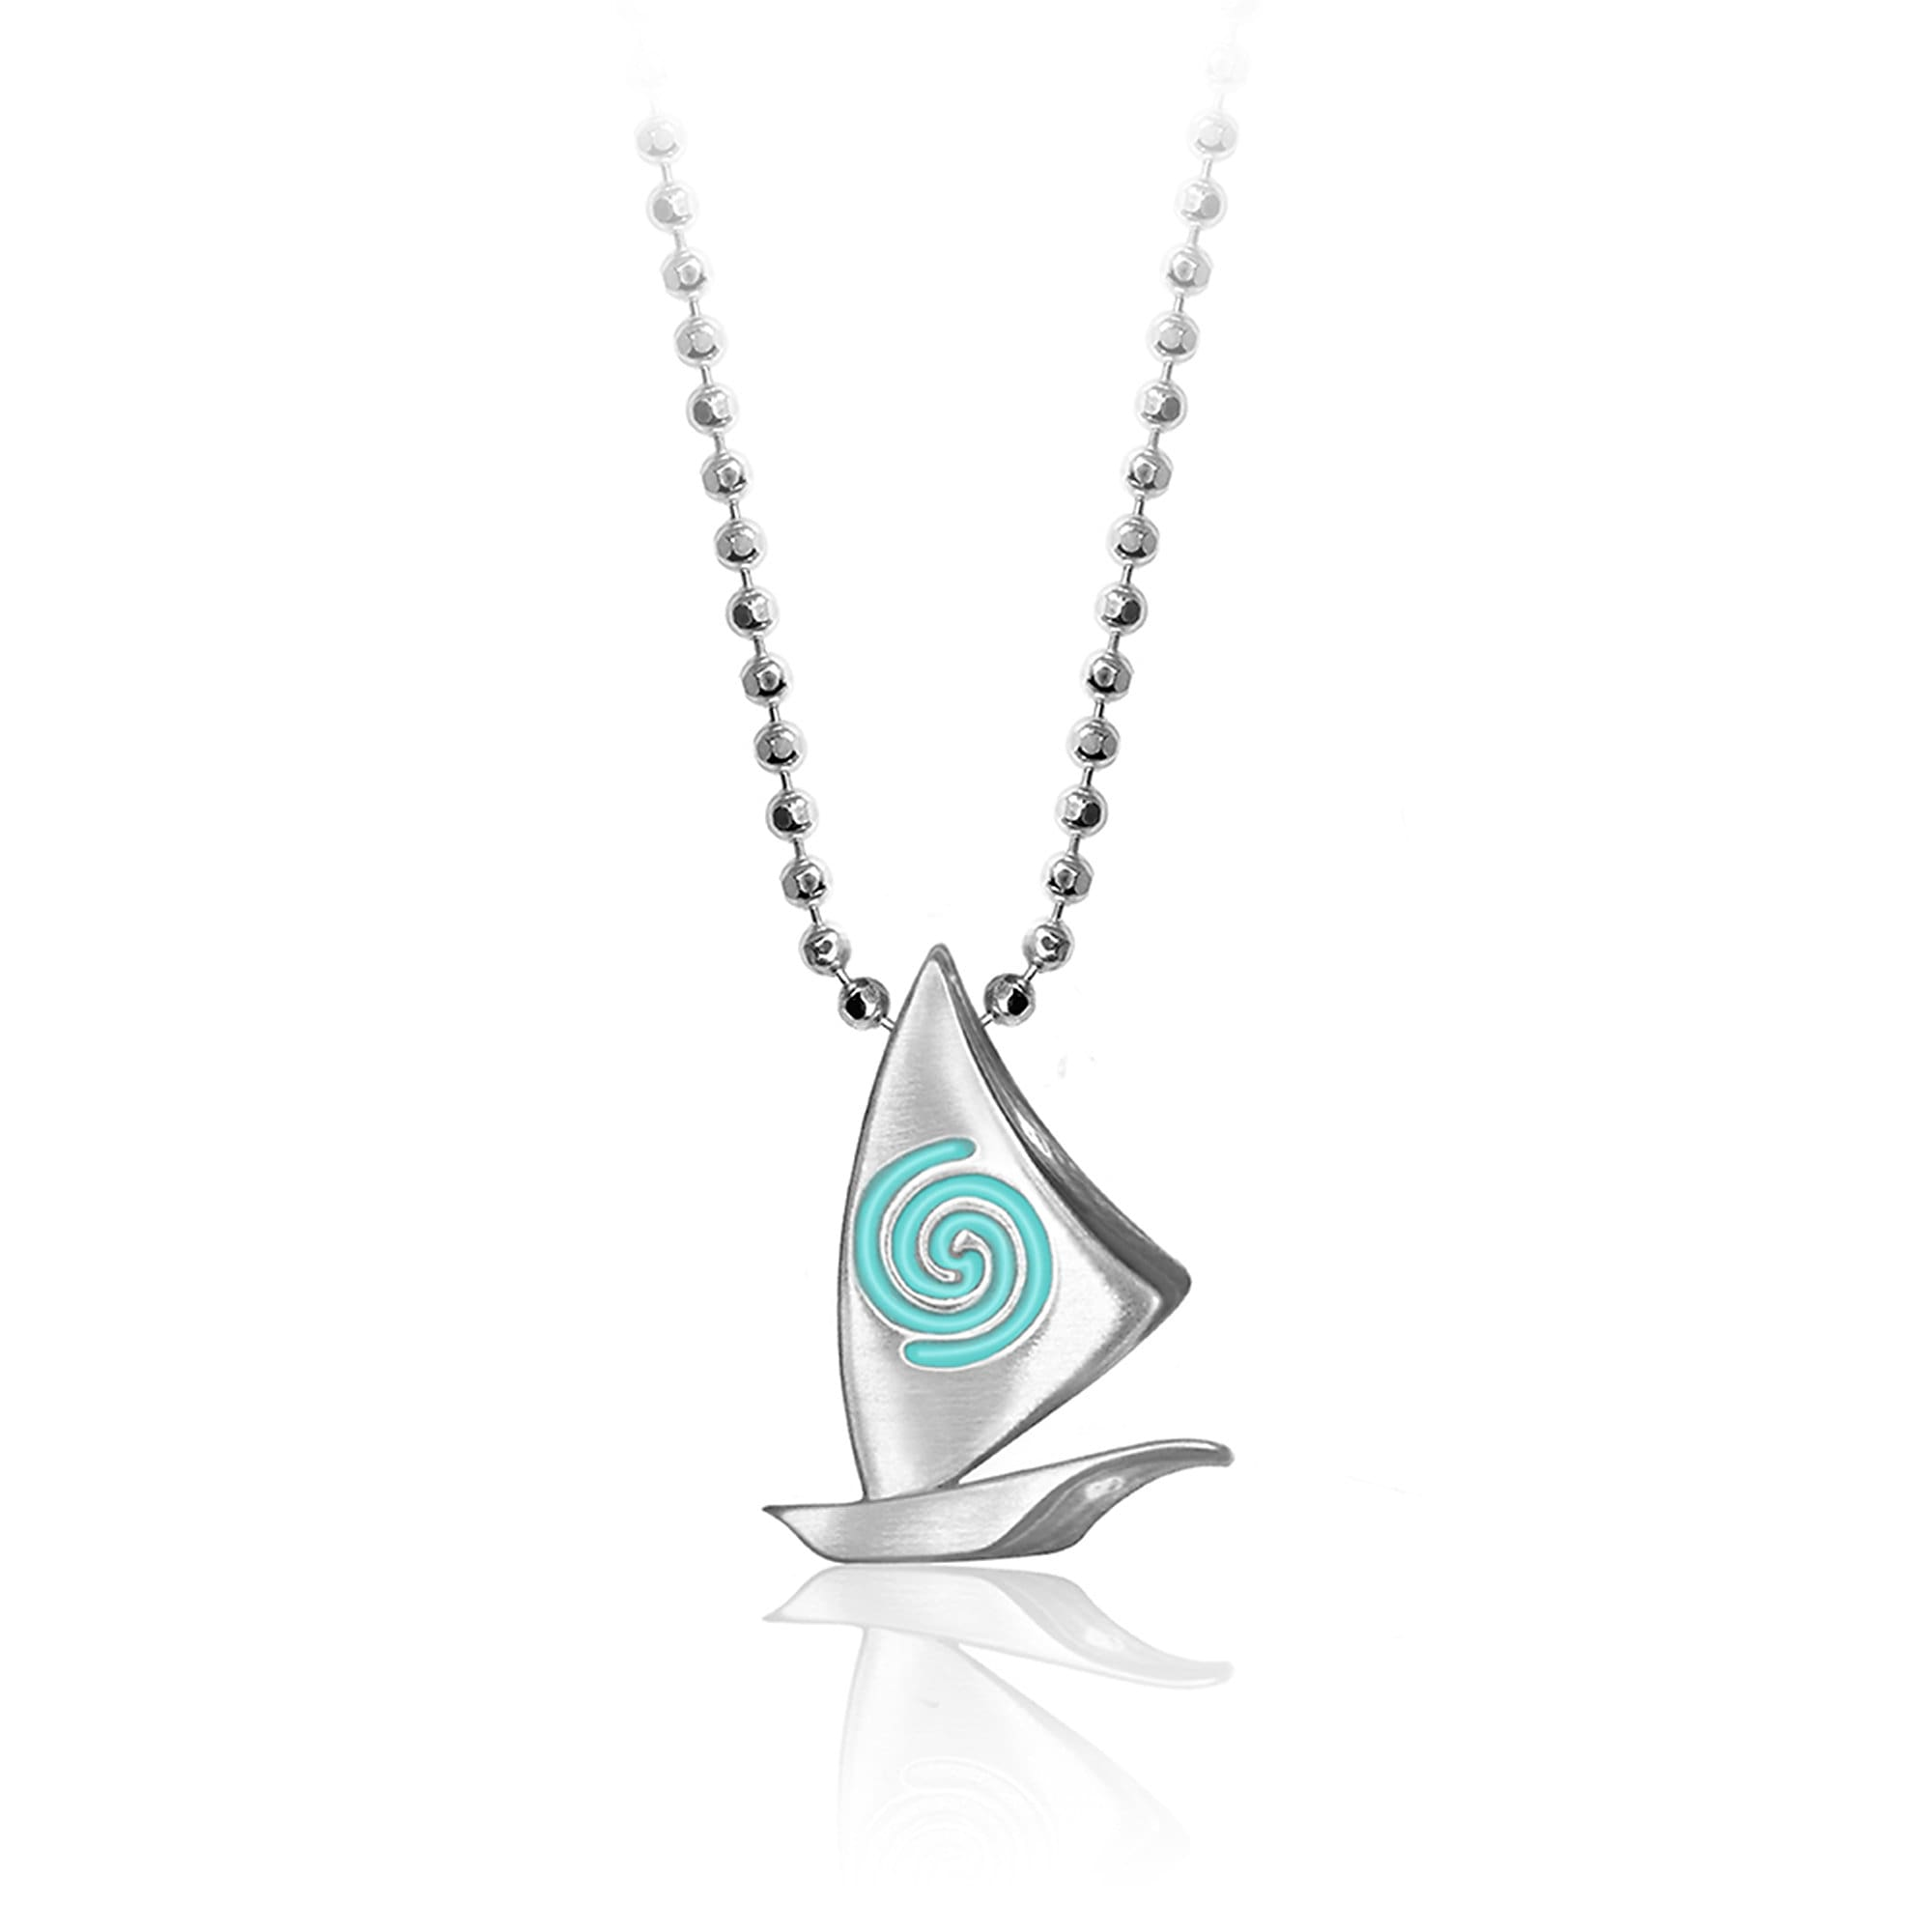 Moana Sterling Silver Necklace by Alex Woo